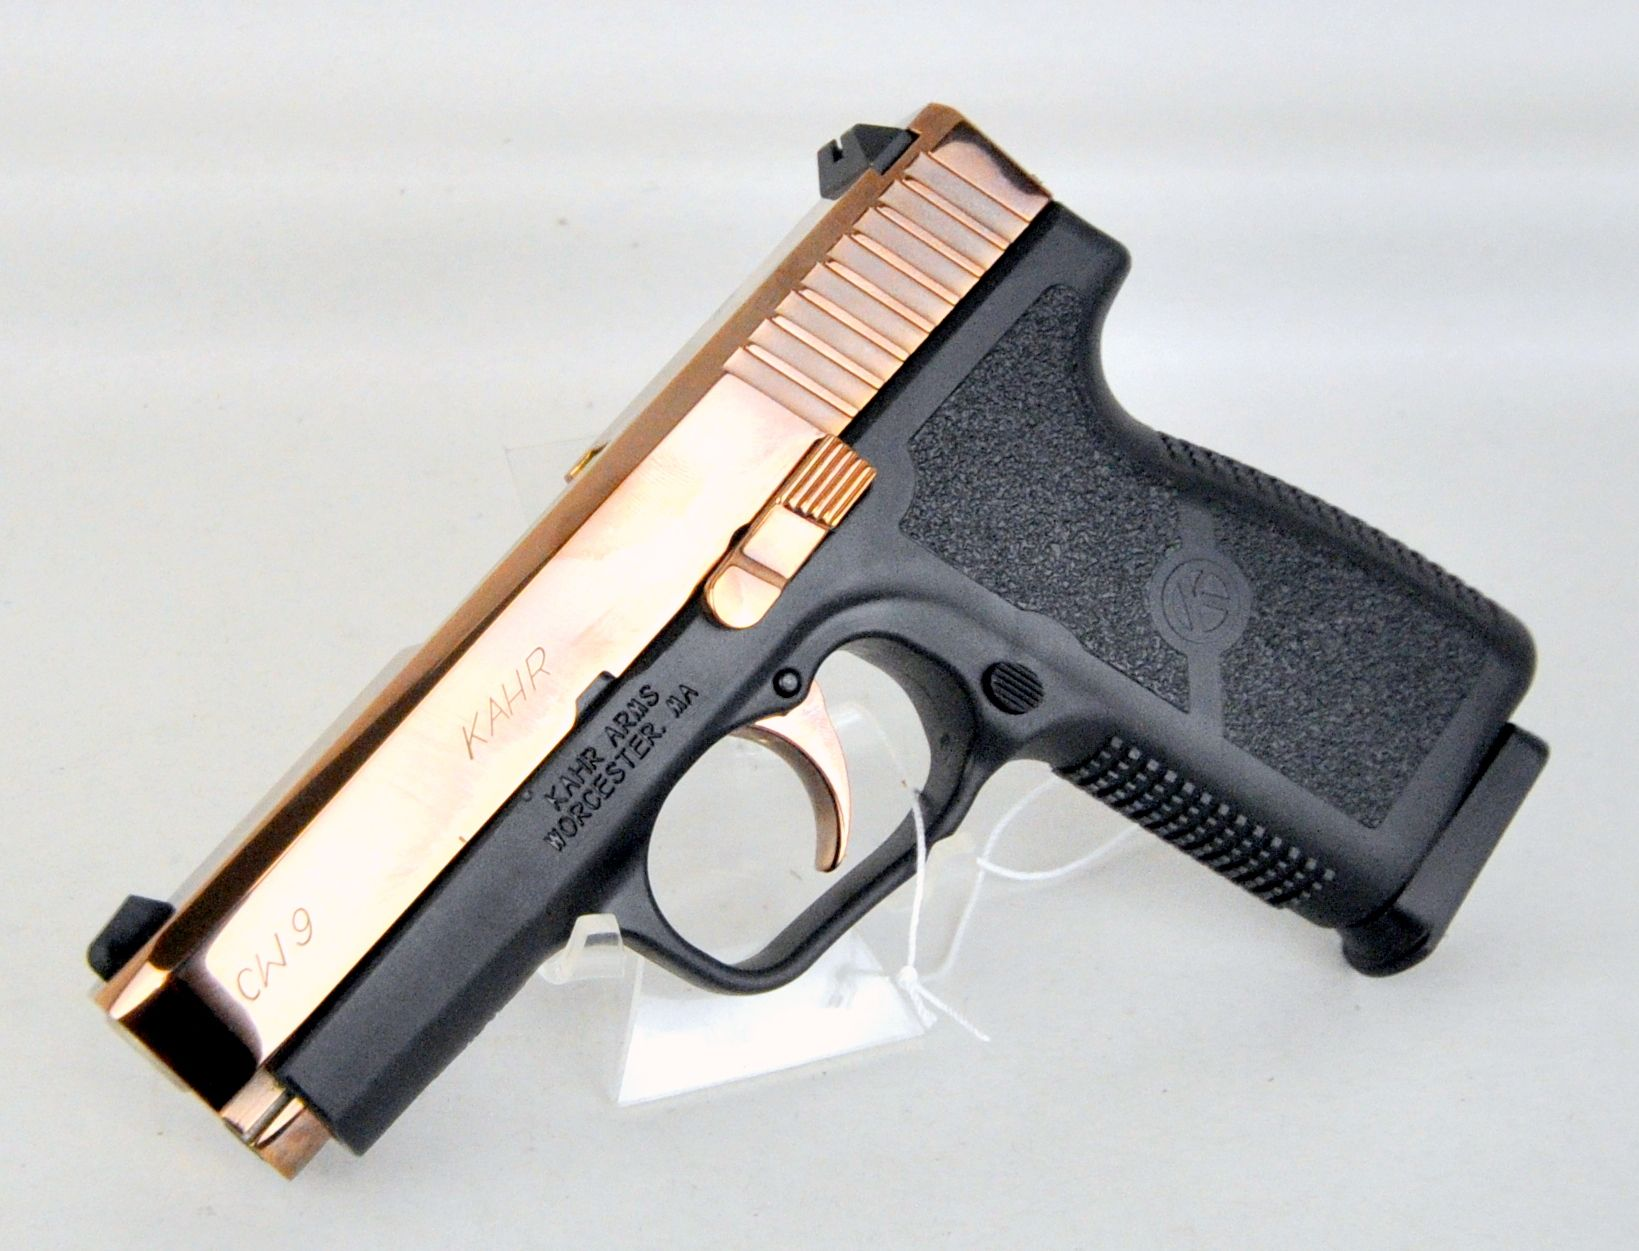 Kahr Arms CW9 Dusty Rose 9mm  CW9093DR  The CW9 from Kahr